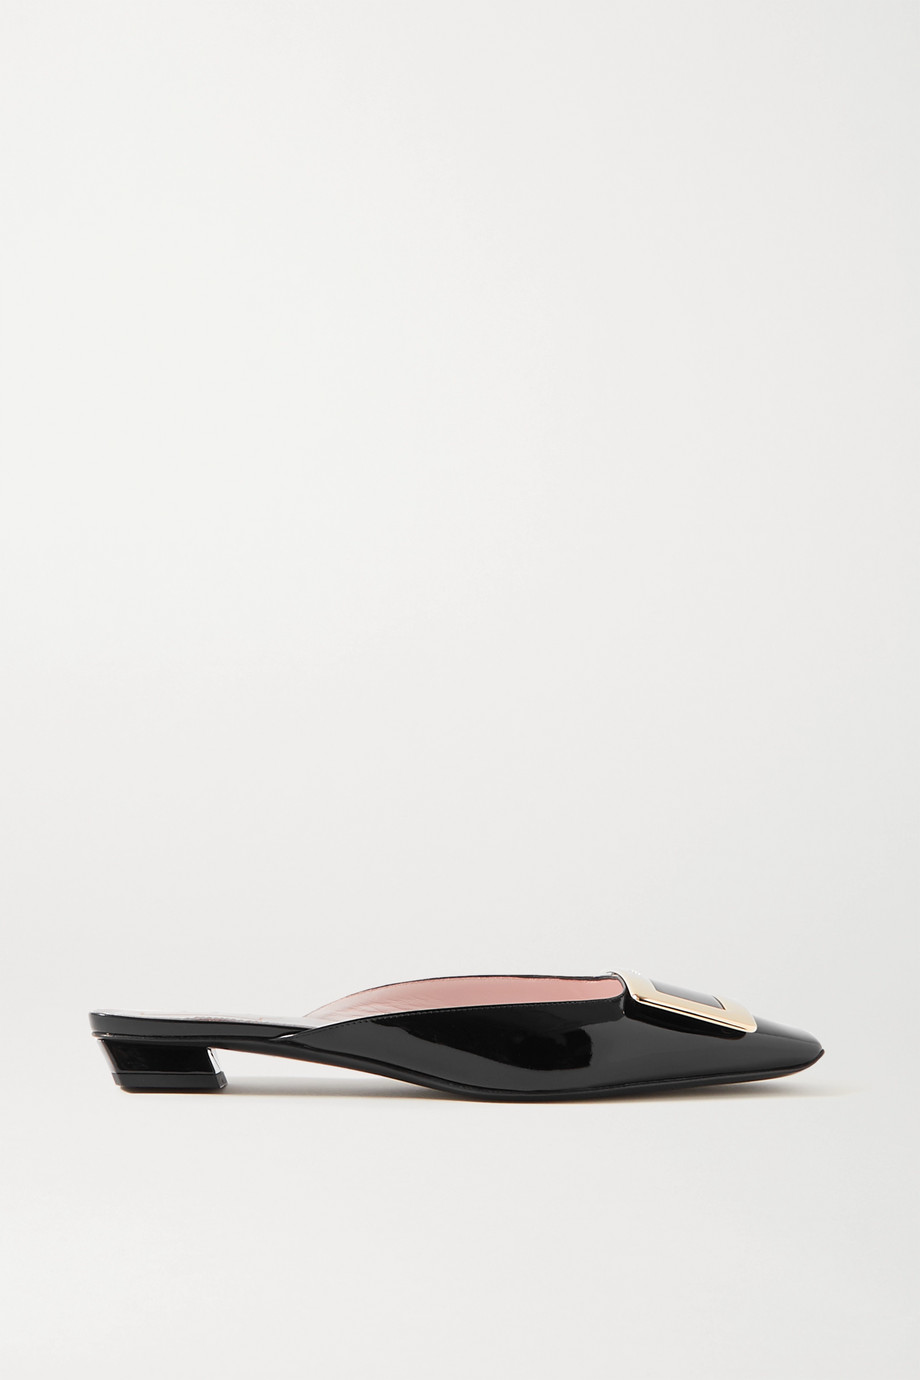 ROGER VIVIER Belle Vivier patent-leather mules